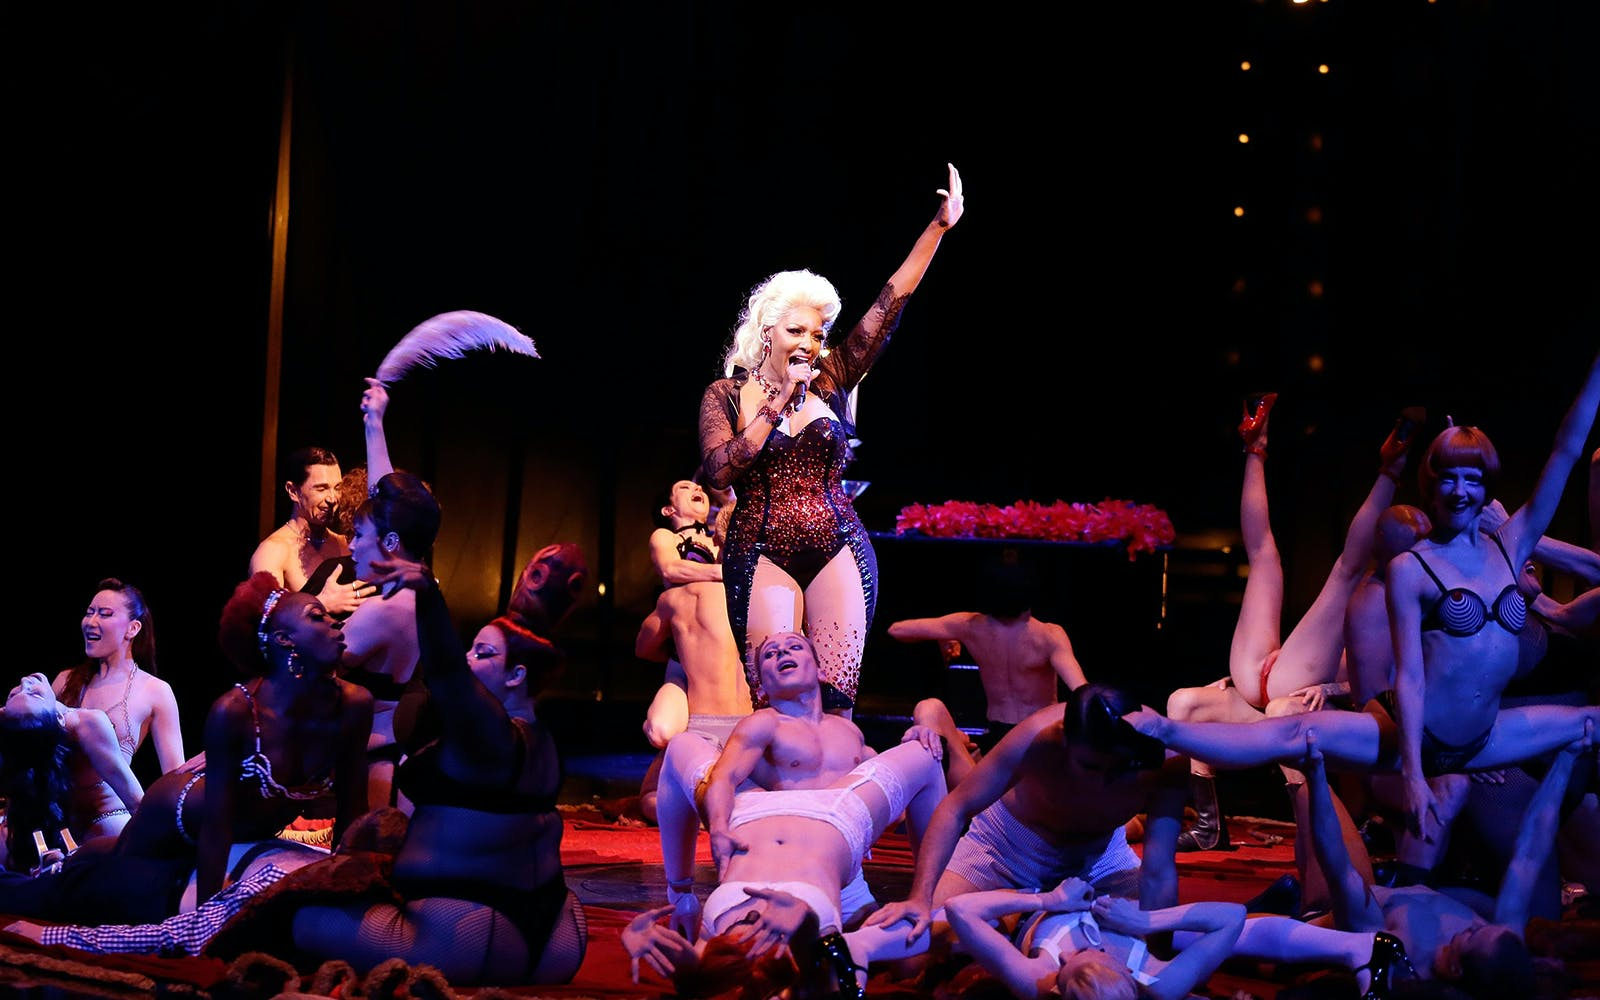 Best Vegas Adult shows - Zumanity